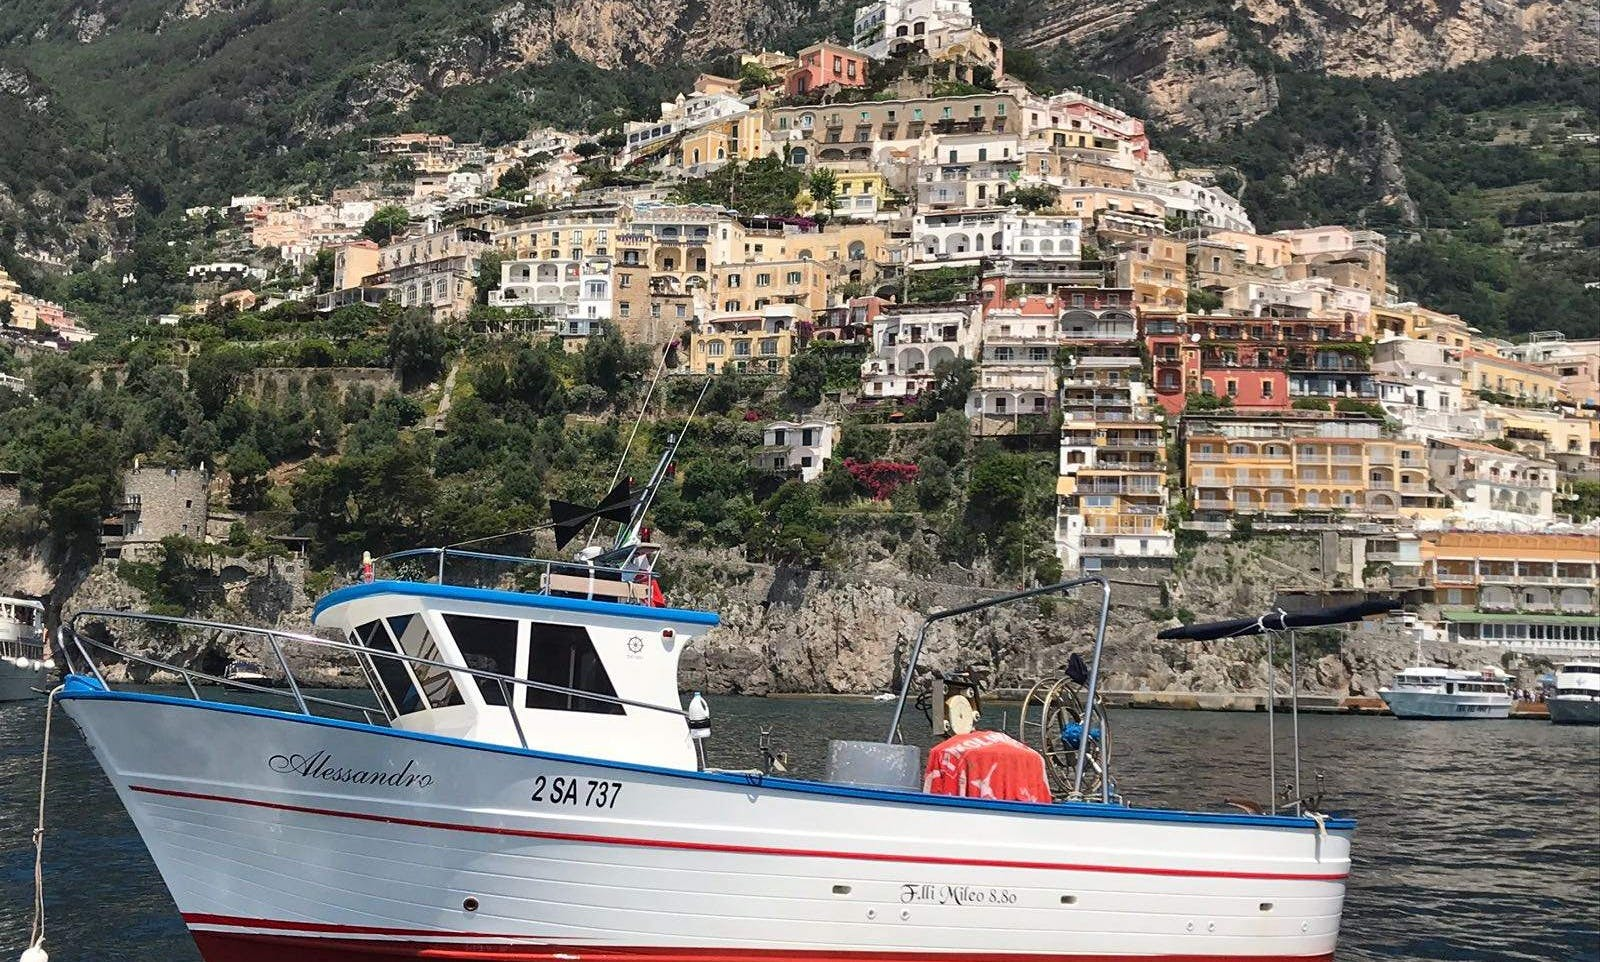 Go fishing on the Almafi Coast right out of the picturesque Positano